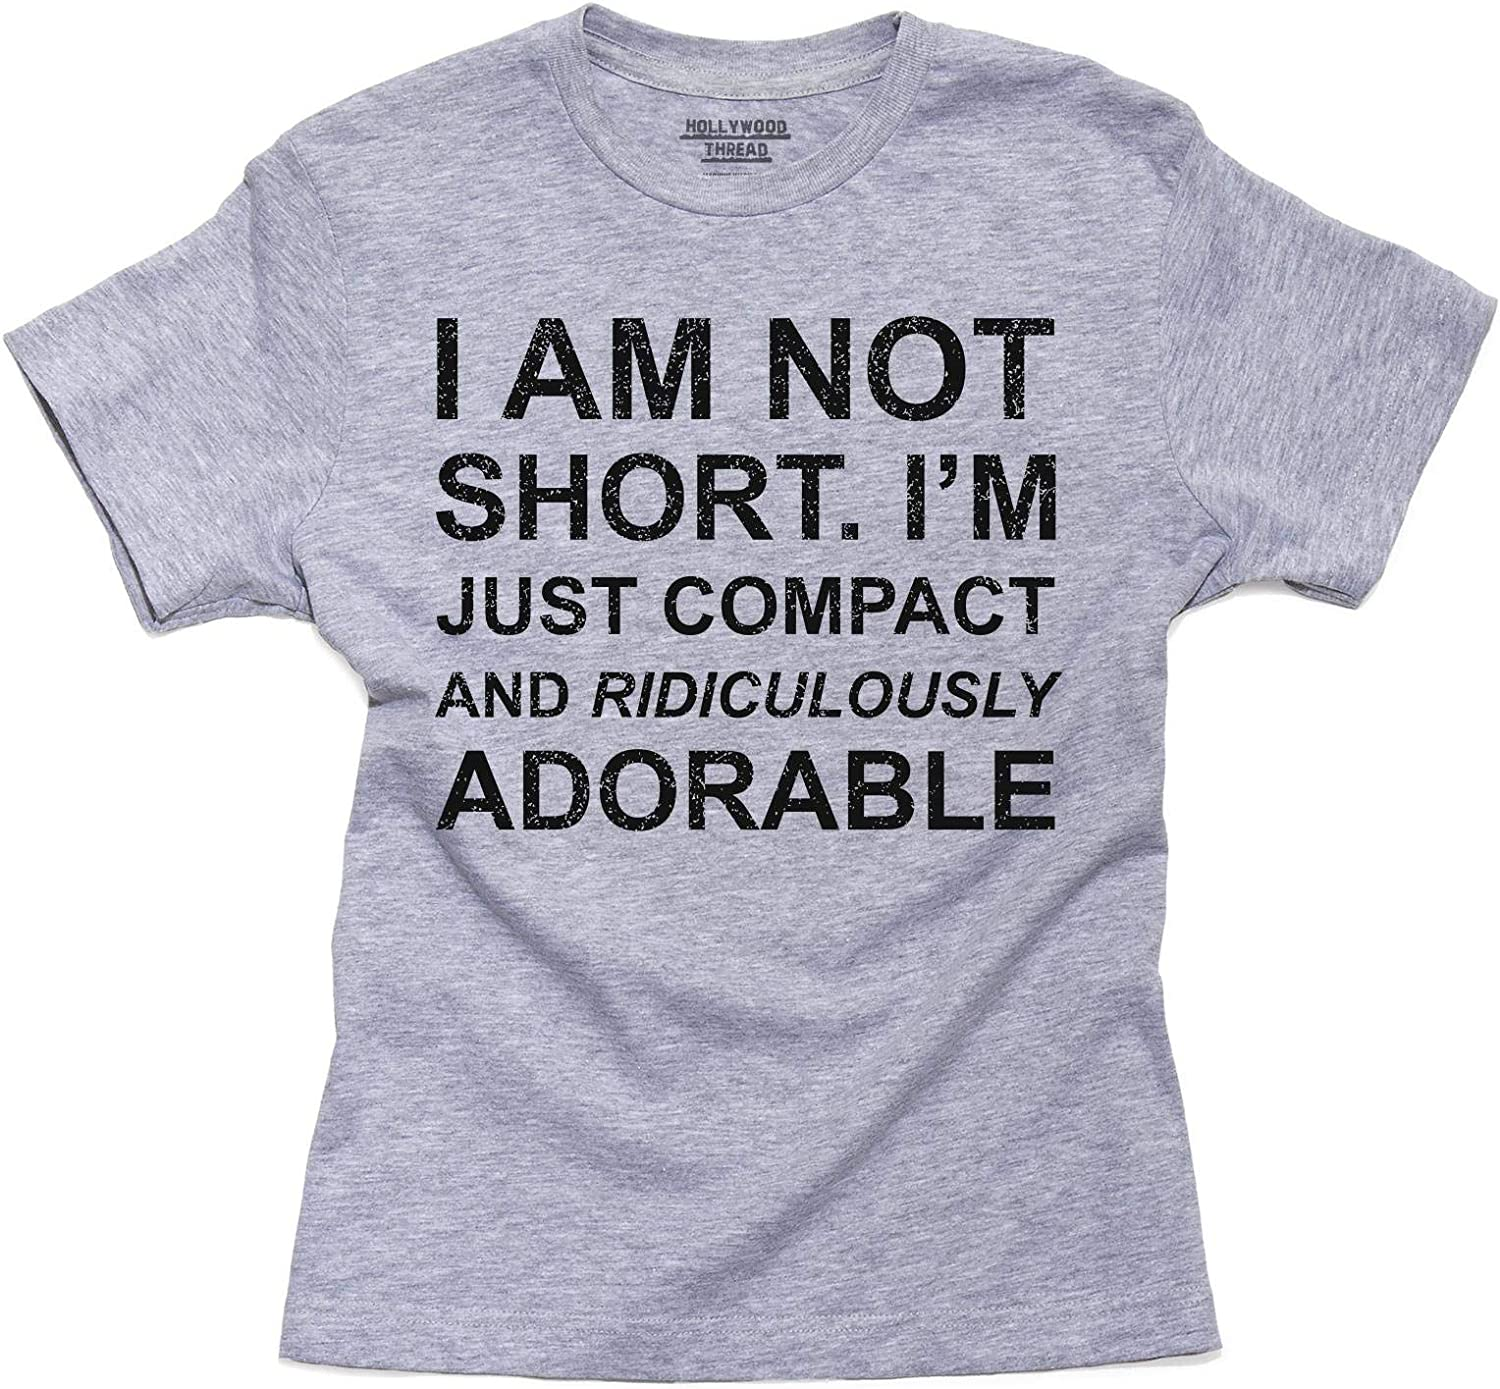 I/'m Not Short I/'M Just Compact and Ridiculously Adorable Funny T Shirt